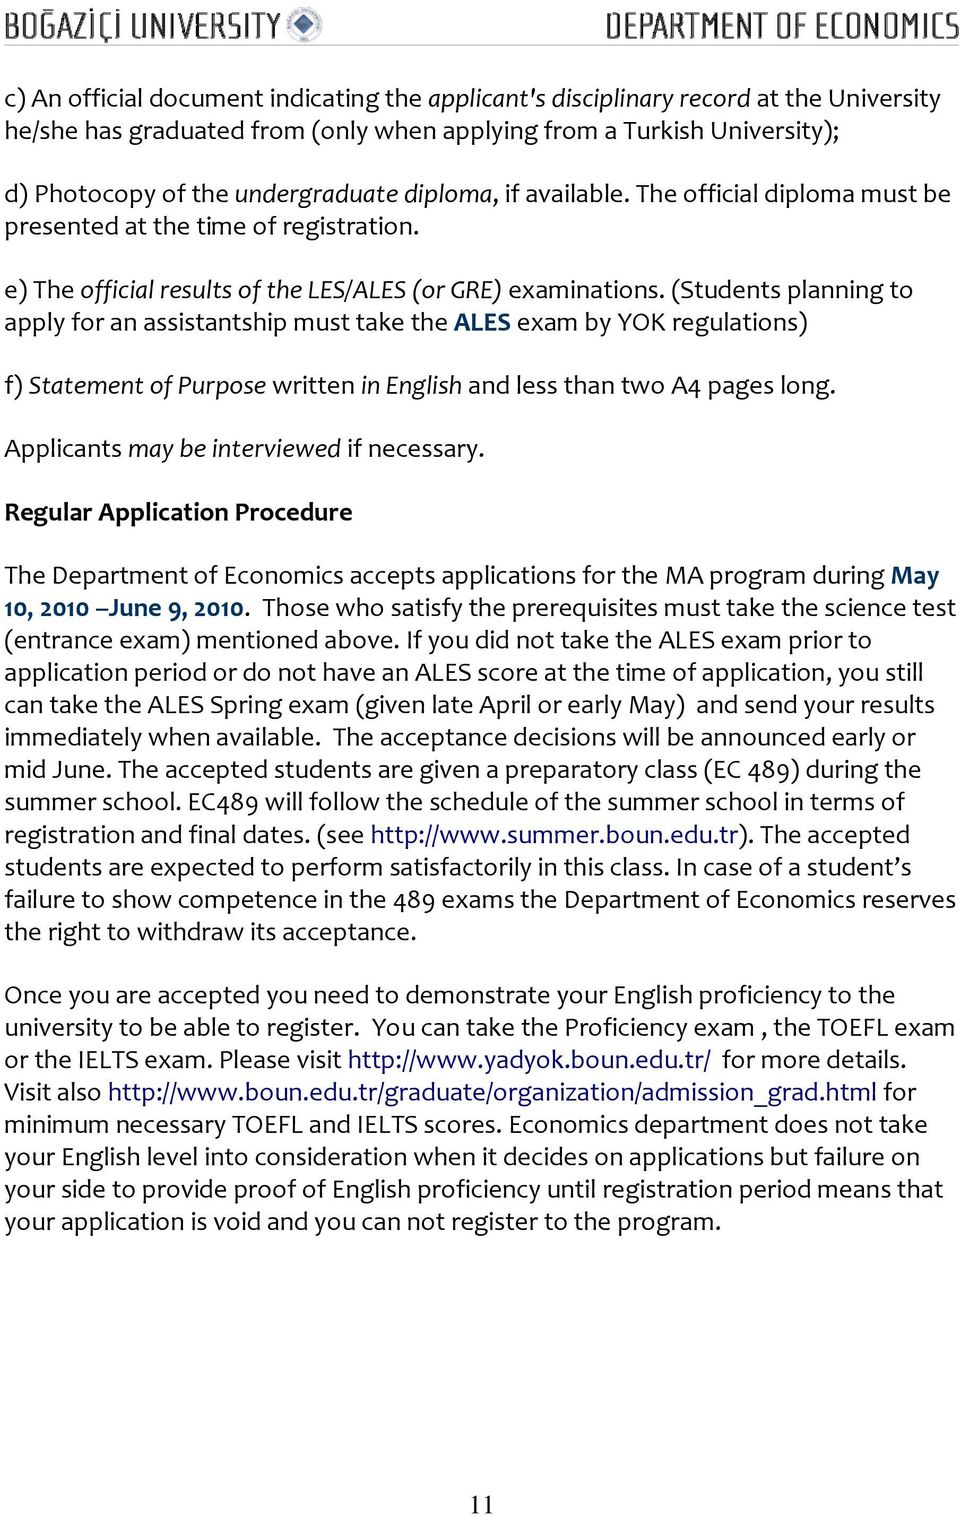 (Students planning to apply for an assistantship must take the ALES exam by YOK regulations) f) Statement of Purpose written in English and less than two A4 pages long.